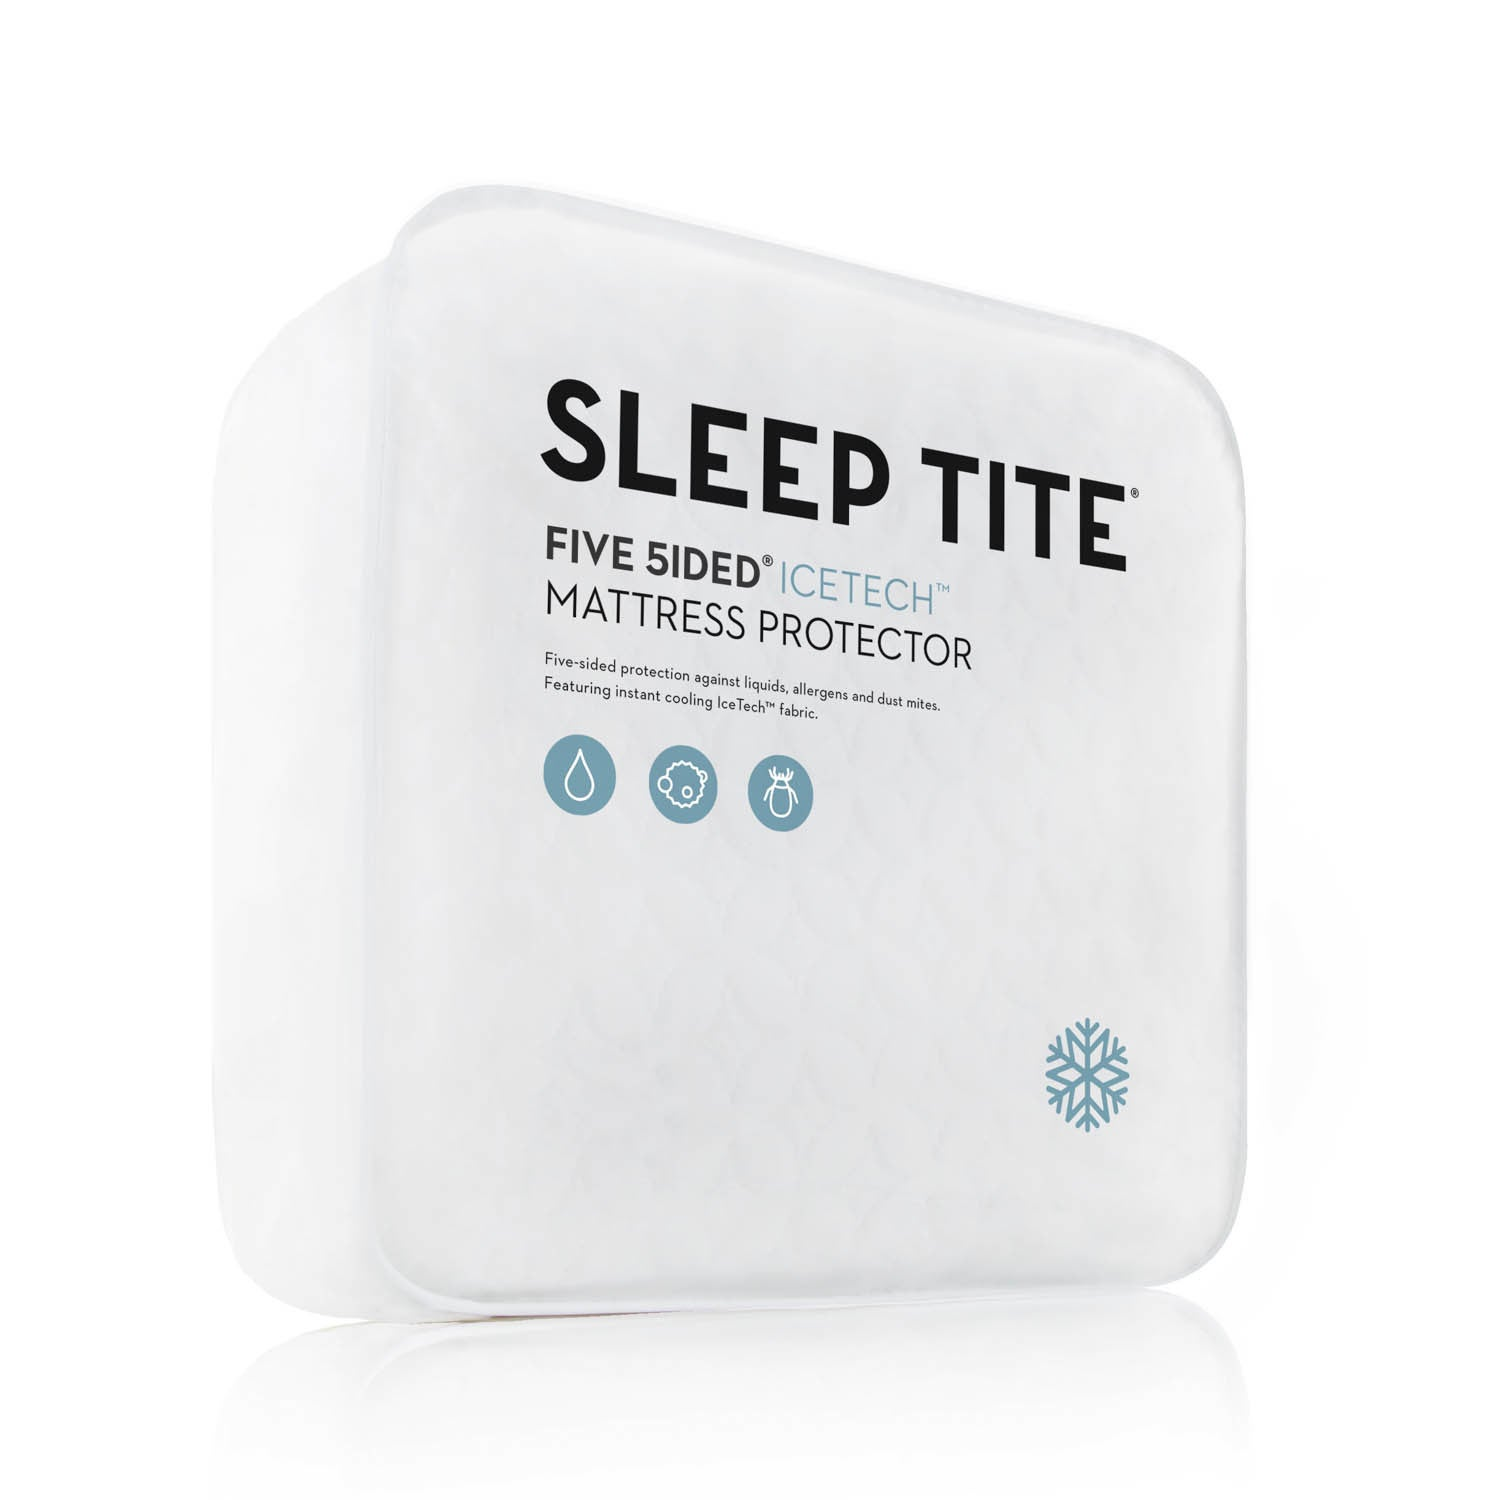 Malouf Sleep Tite Five 5ided IceTech Mattress Protector (Twin), White (Polyester)